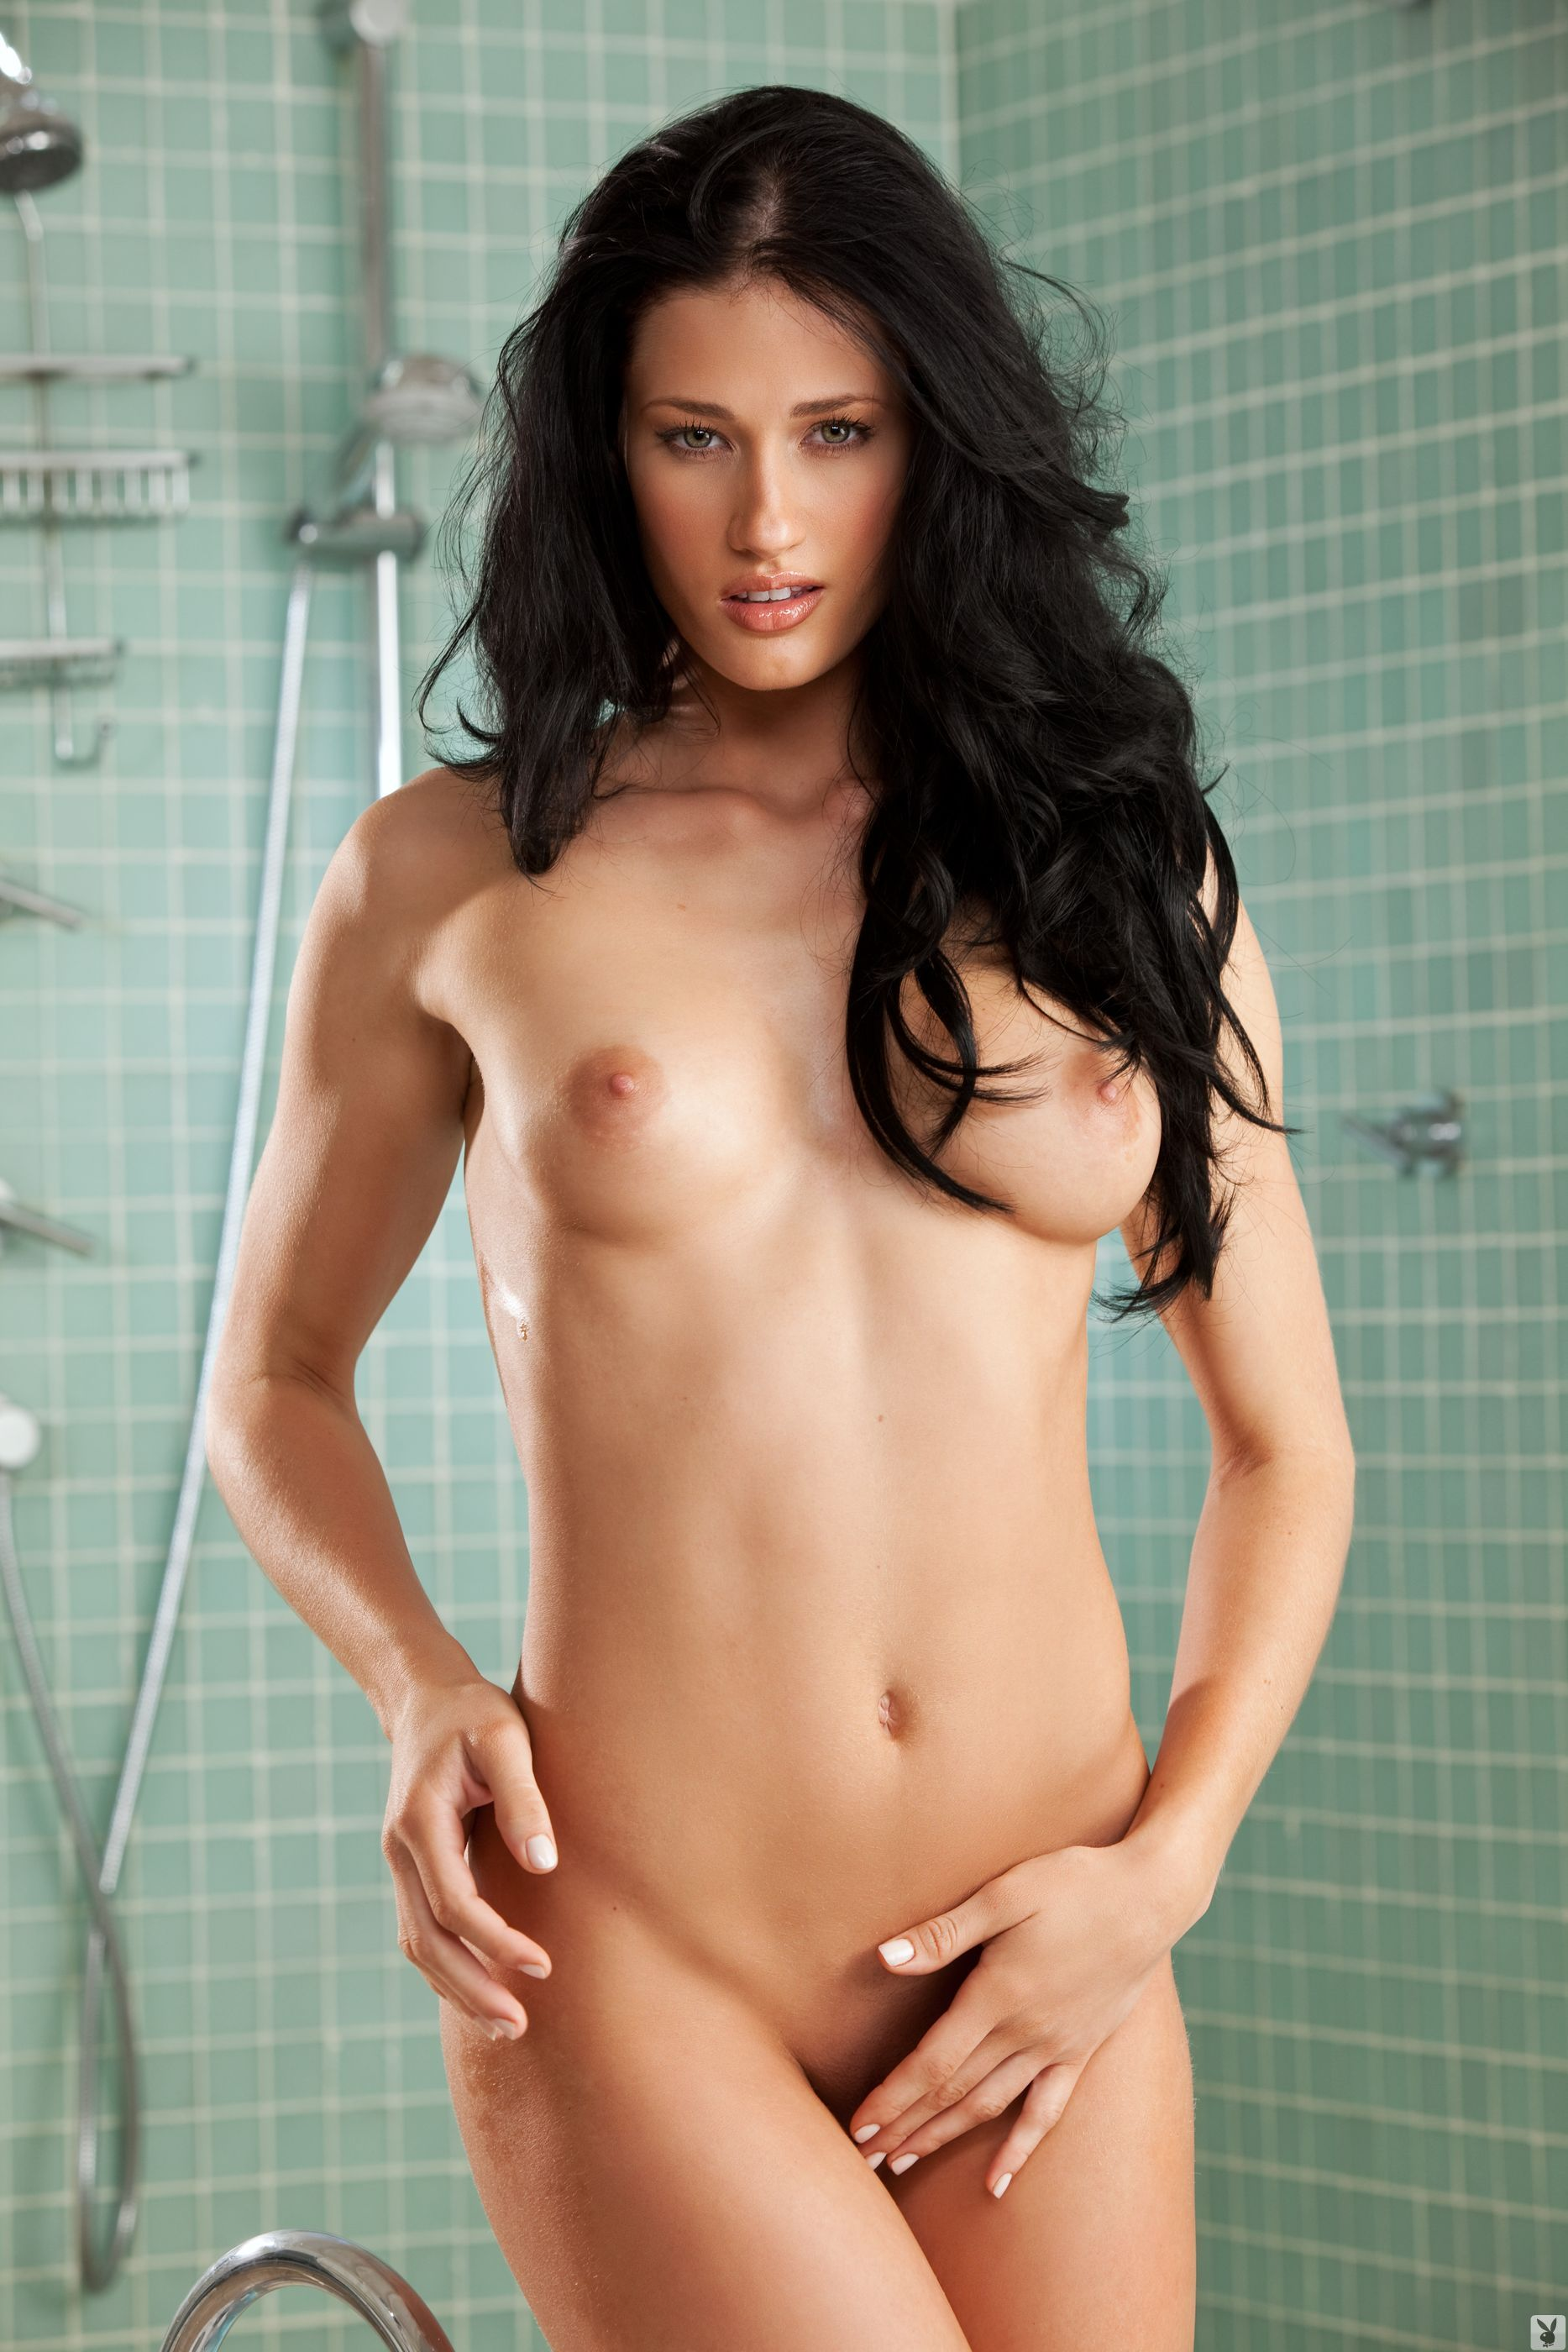 ashton-winters-brunette-nude-bathroom-playboy-22